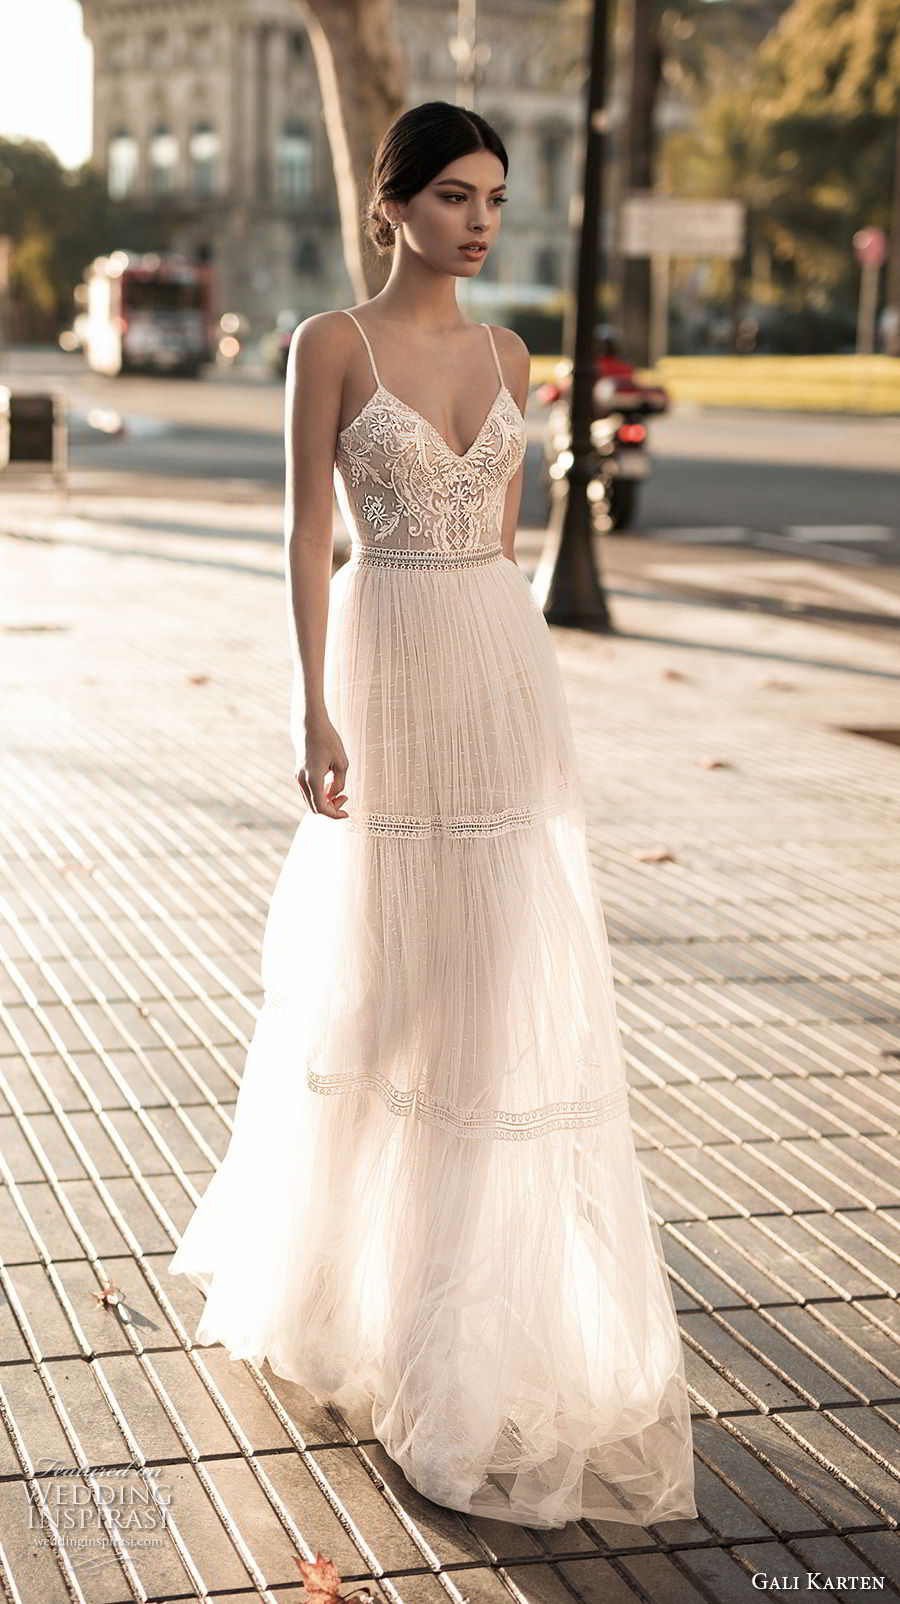 gali karten 2017 bridal spaghetti strap sweetheart neckline heavily embellished bodice sexy romantic soft a line wedding dress open scoop back sweep train (4) mv